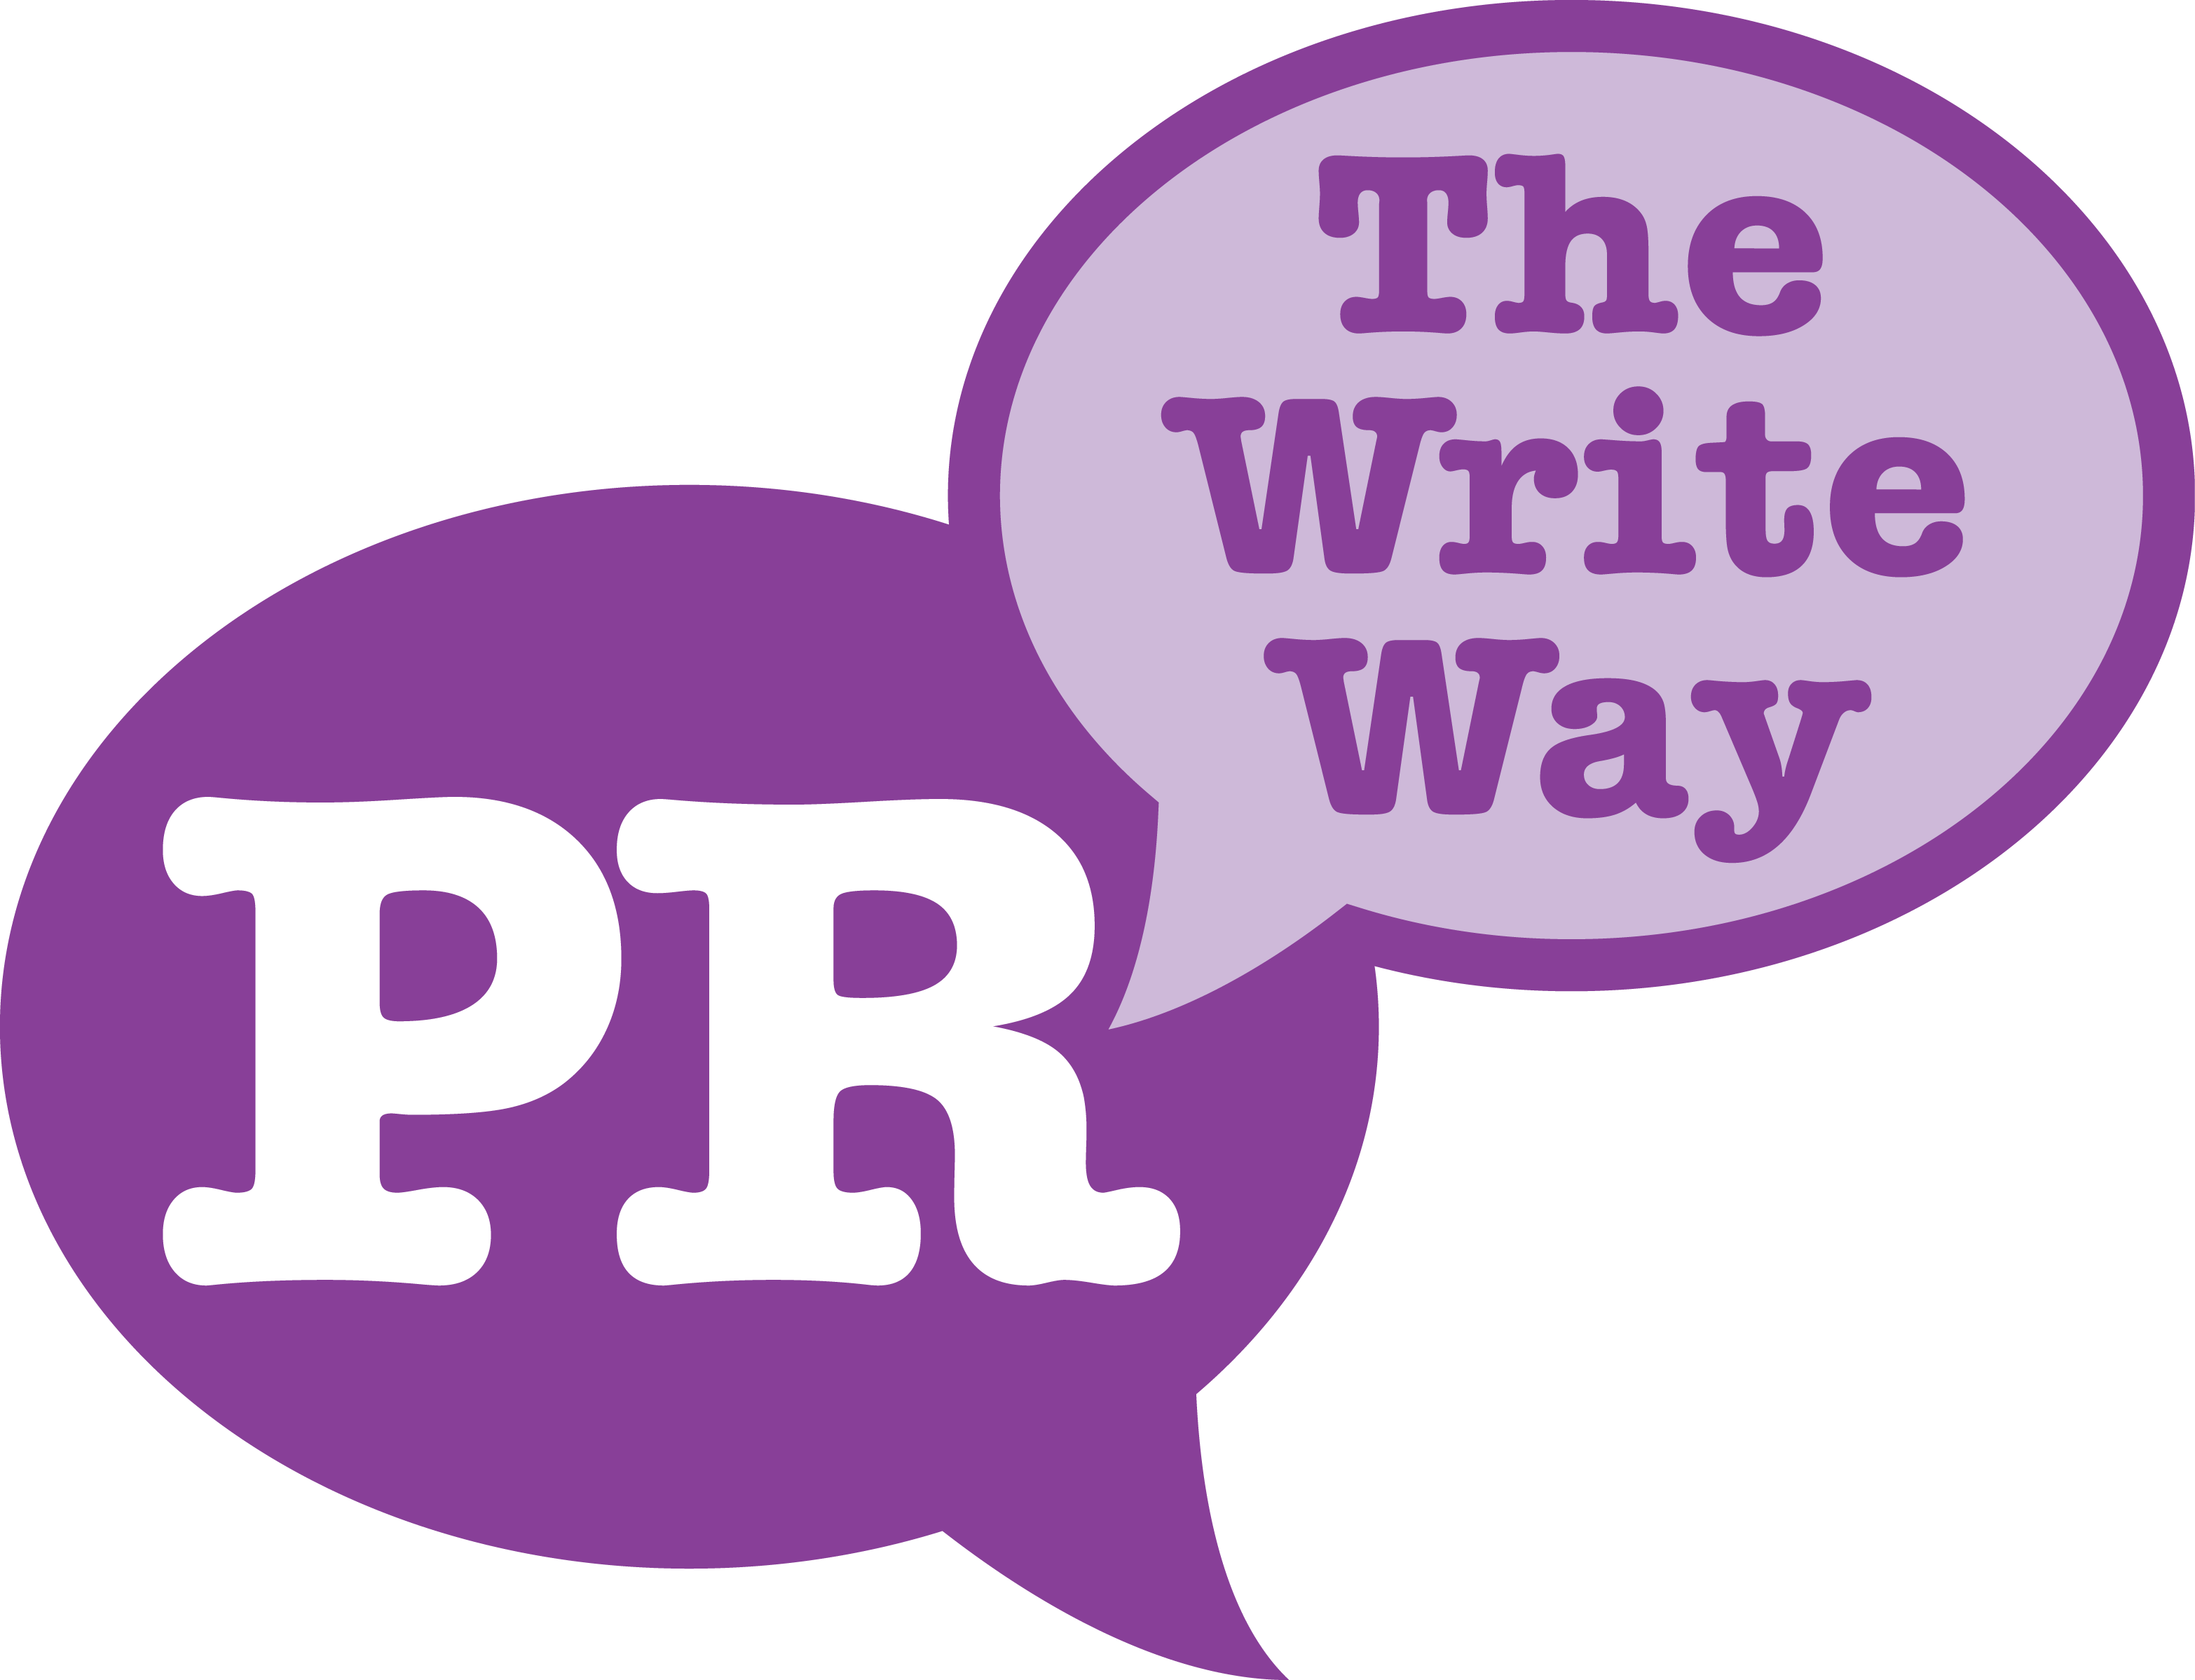 PR the Write Way